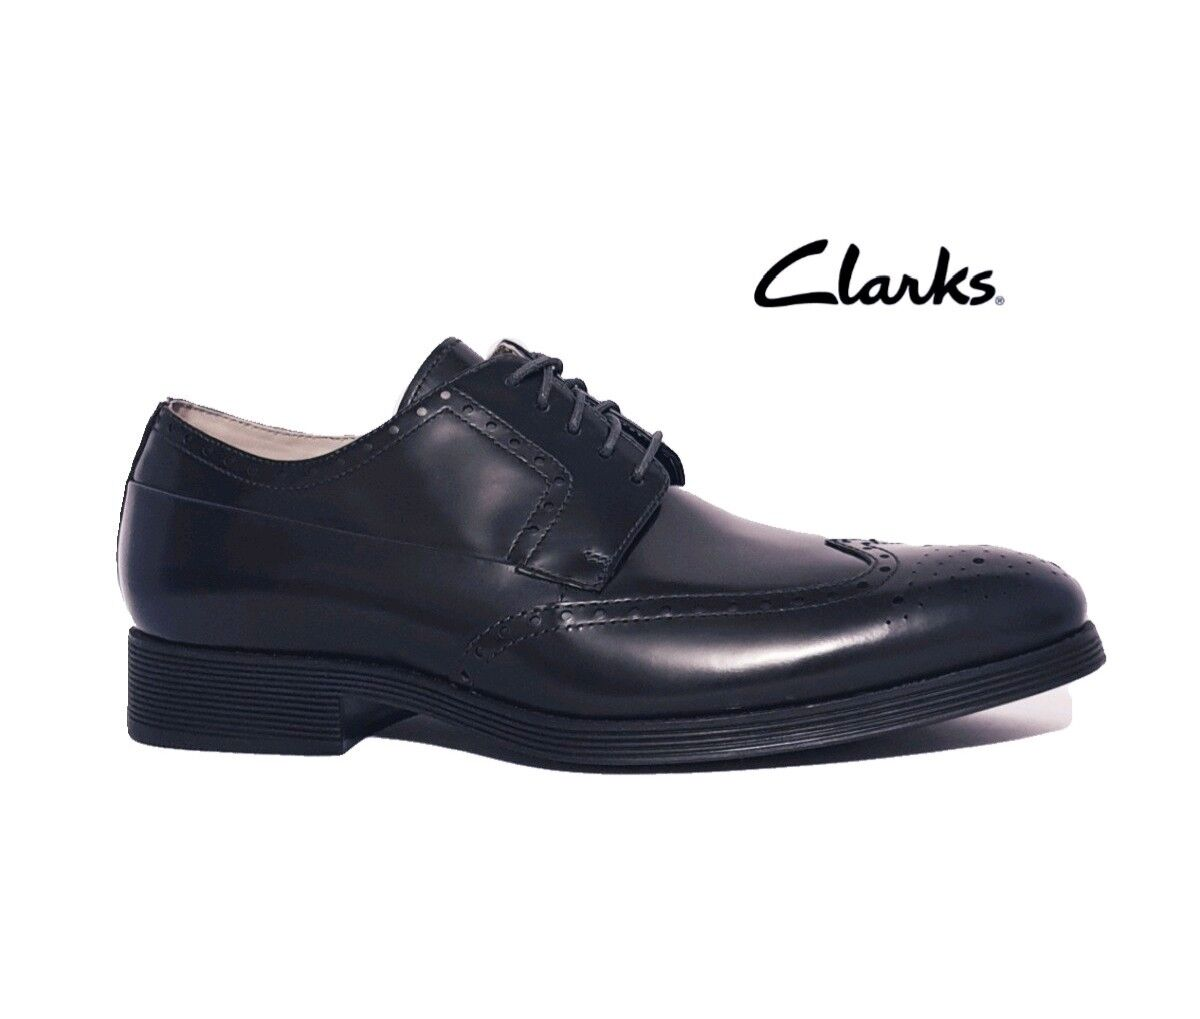 CLARKS GABWELL LIMIT  DARK NAVY UP BLUE LEATHER BROGUE LACE UP NAVY SHOES MENS 5d3f2e